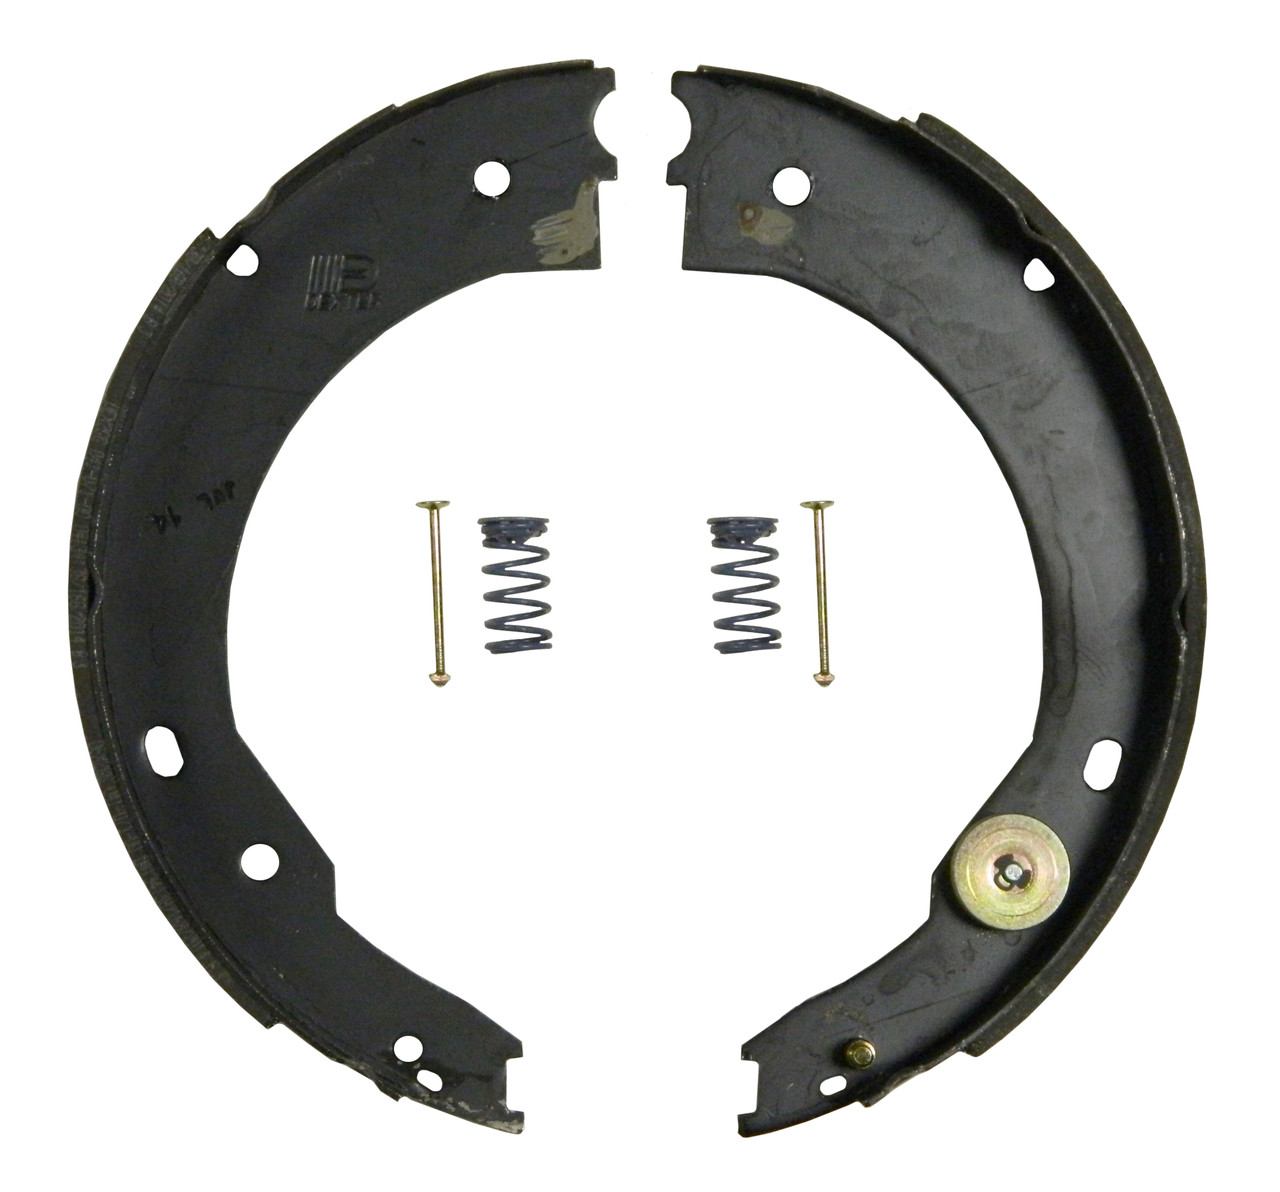 71-676 --- Shoe and Lining Kit for 7,000 lb Capacity Dexter Nev-R-Adjust Electric Brakes - RH